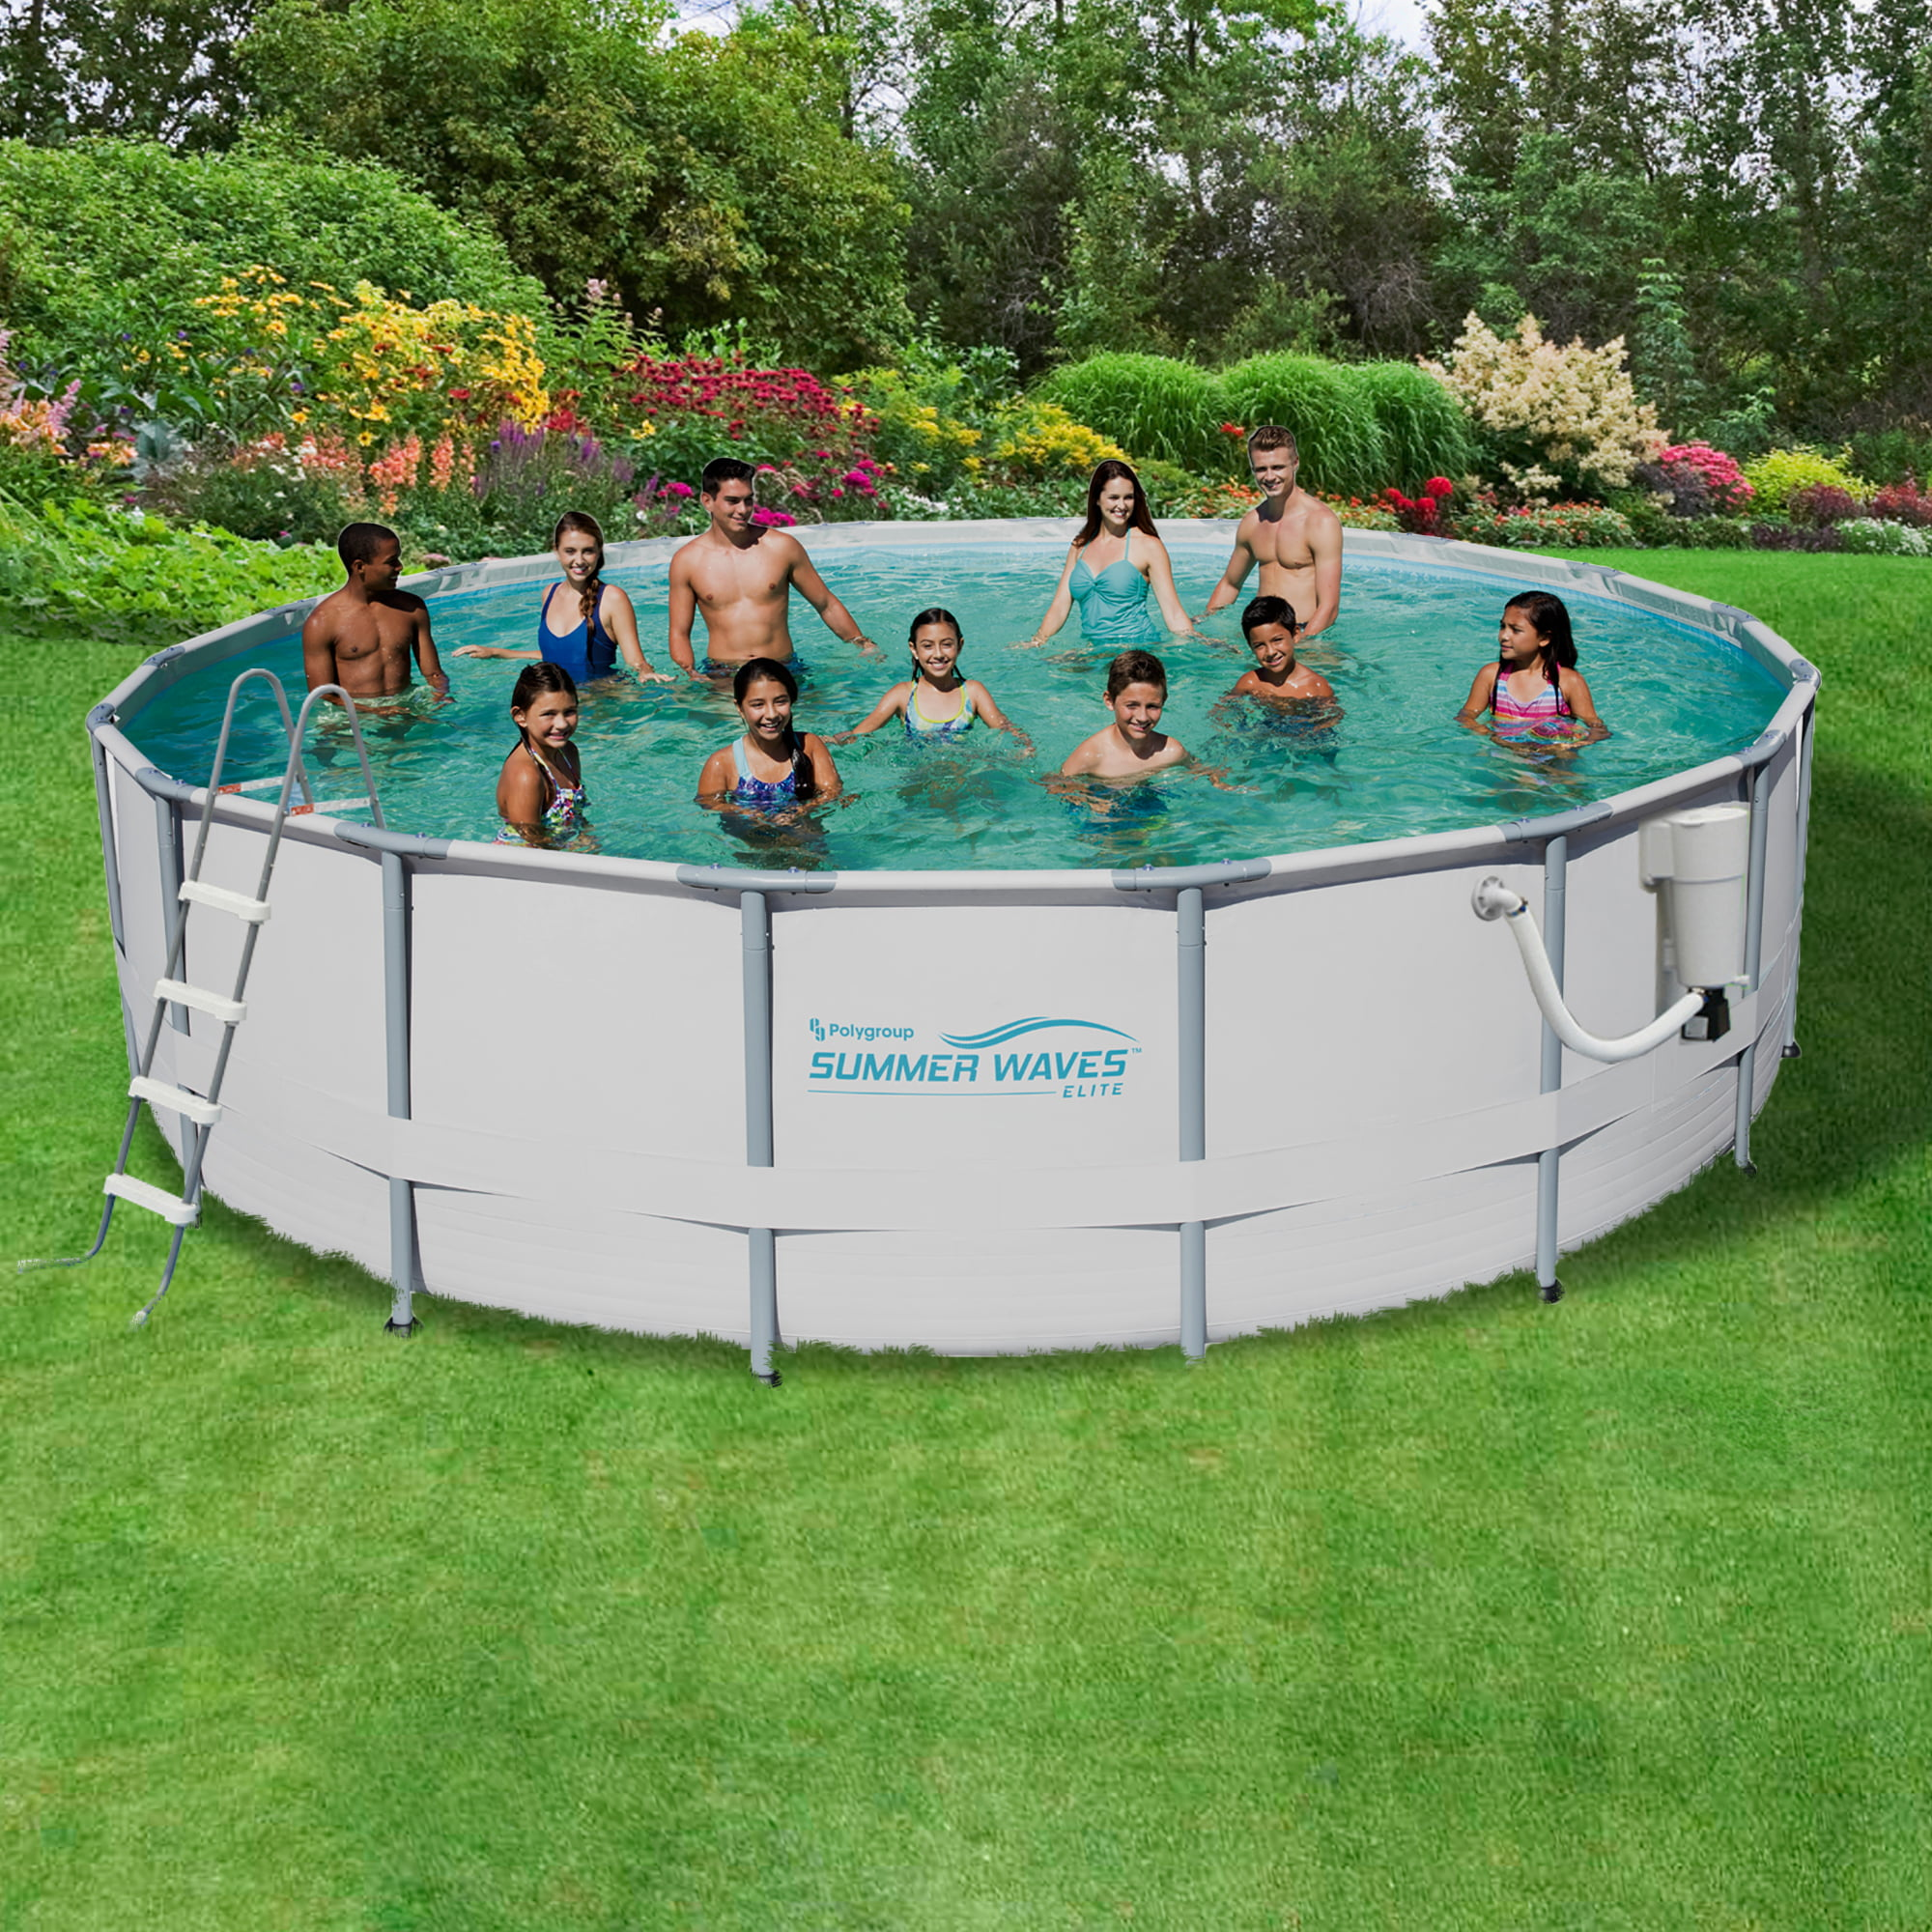 Summer Waves Elite 18-ft Round 52-in Deep Metal Frame Swimming Pool Package by Blue Wave